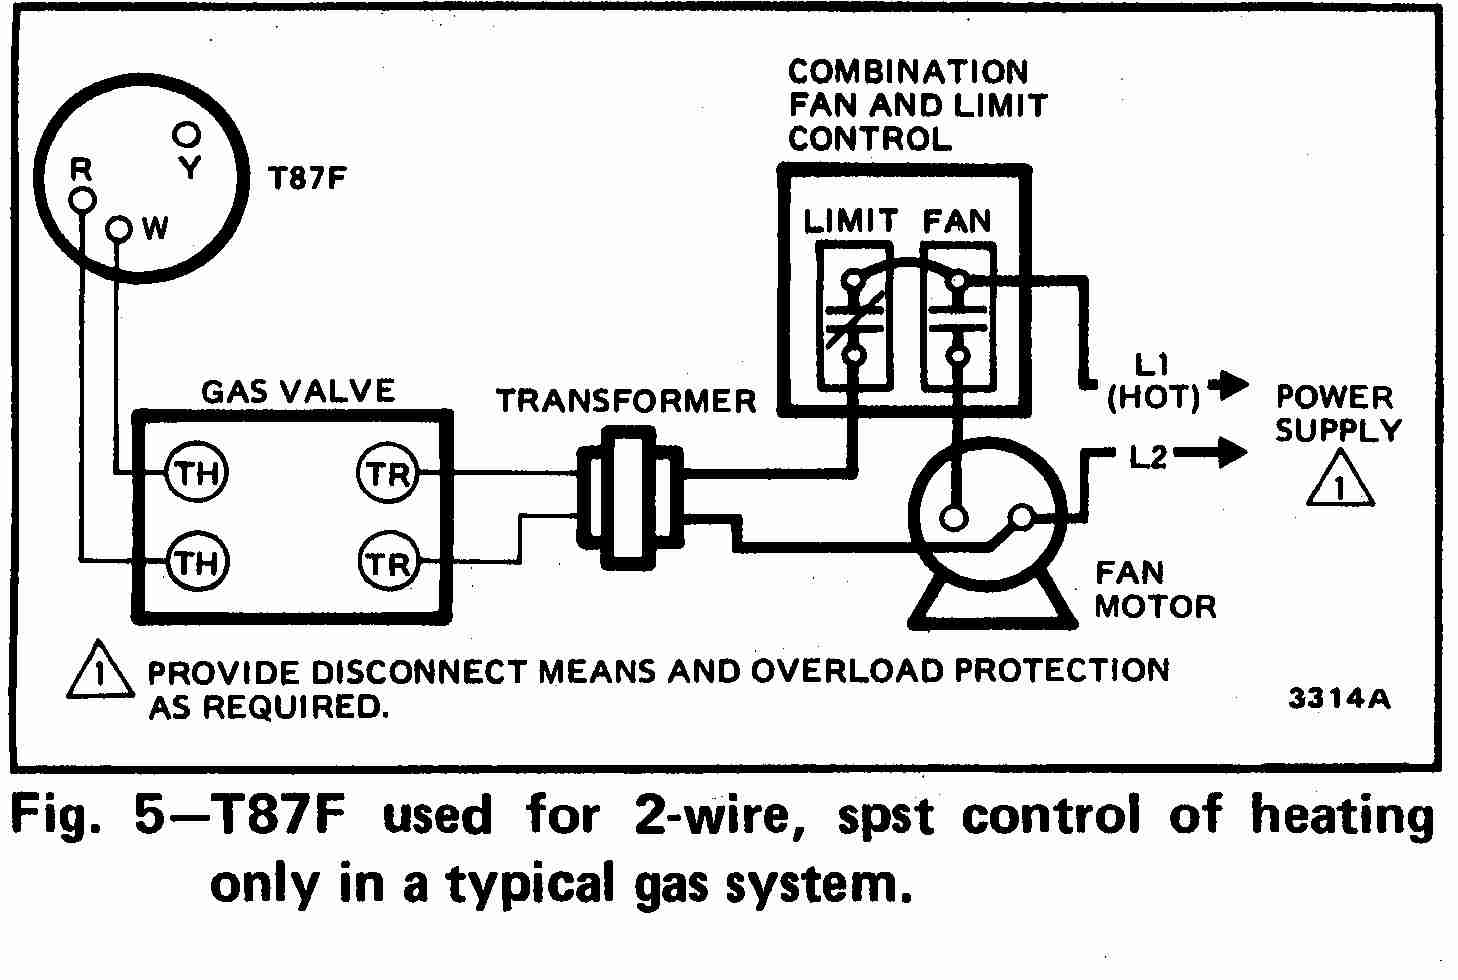 Wiring Diagram For Rheem Hot Water Heater